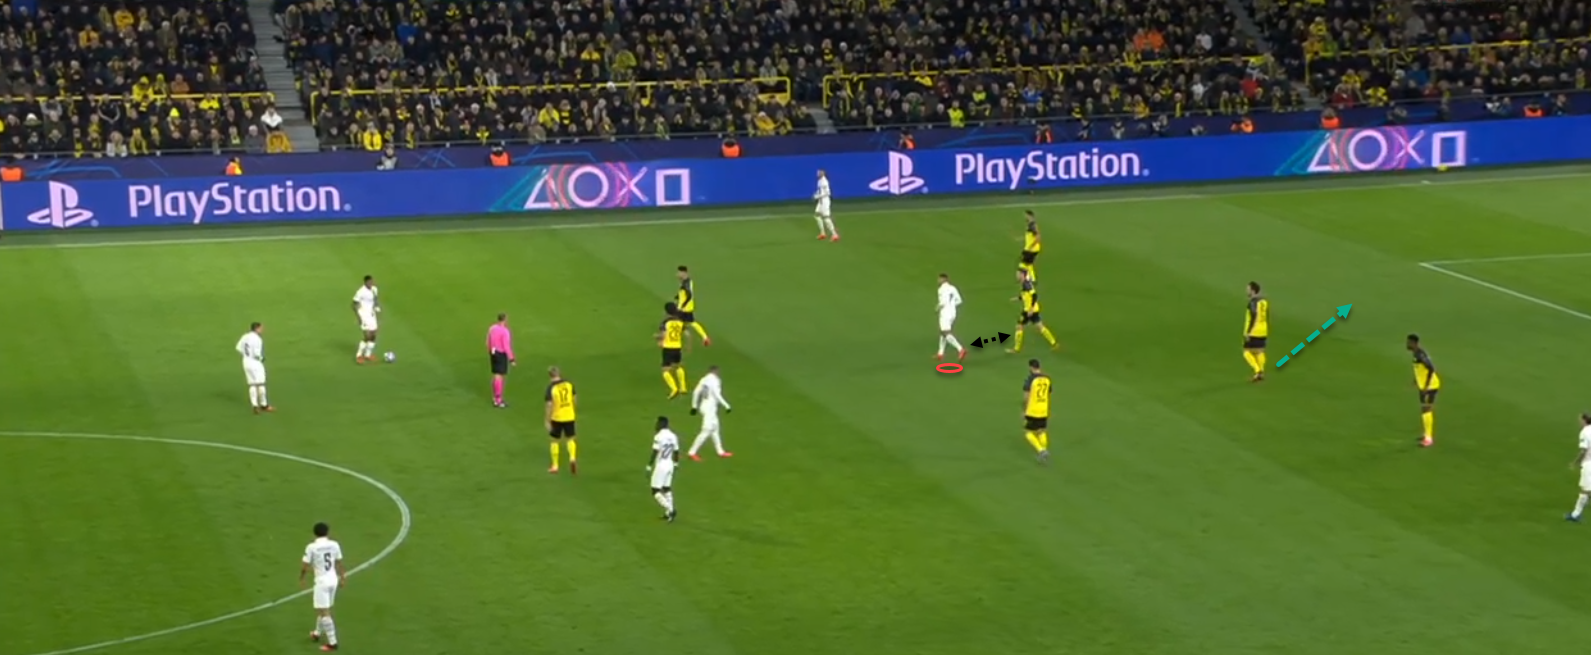 Kylian Mbappé: How to defend against him - tactical analysis tactics